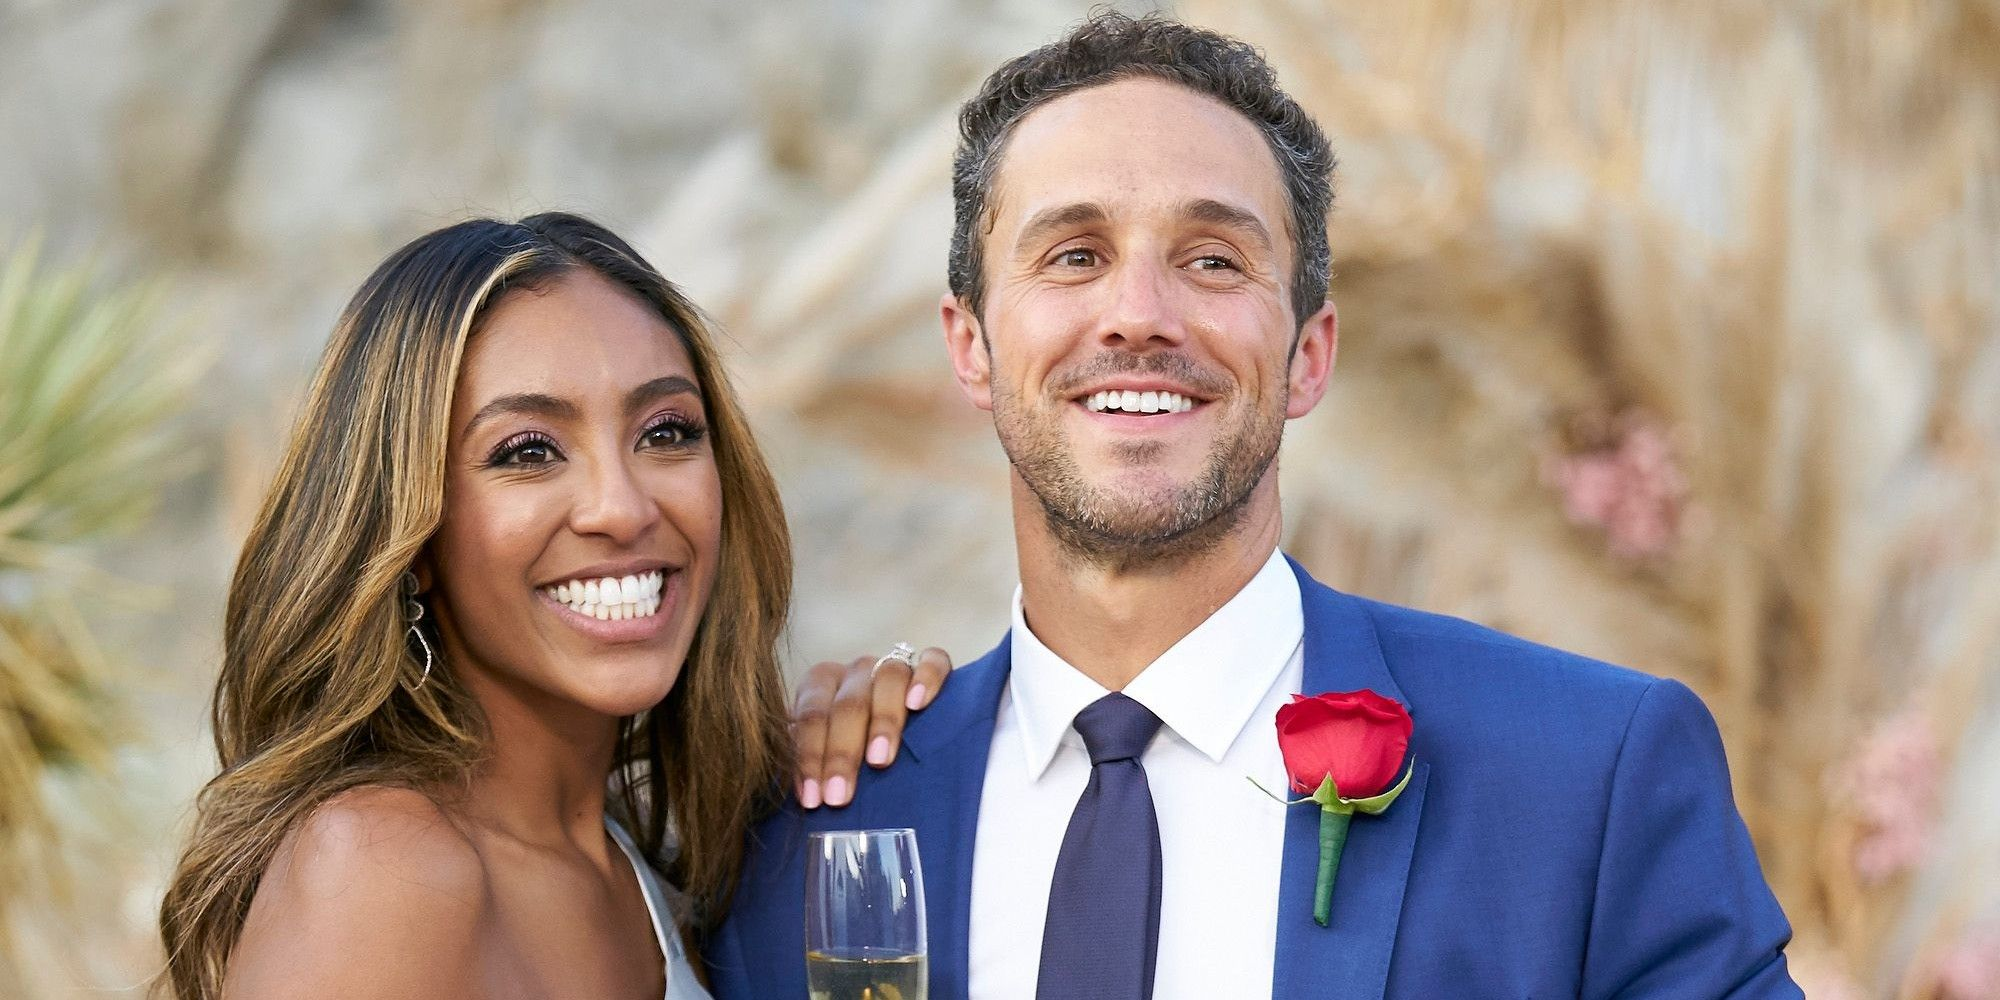 The Bachelorette: How Tayshia Supported Zac's Sobriety During Filming